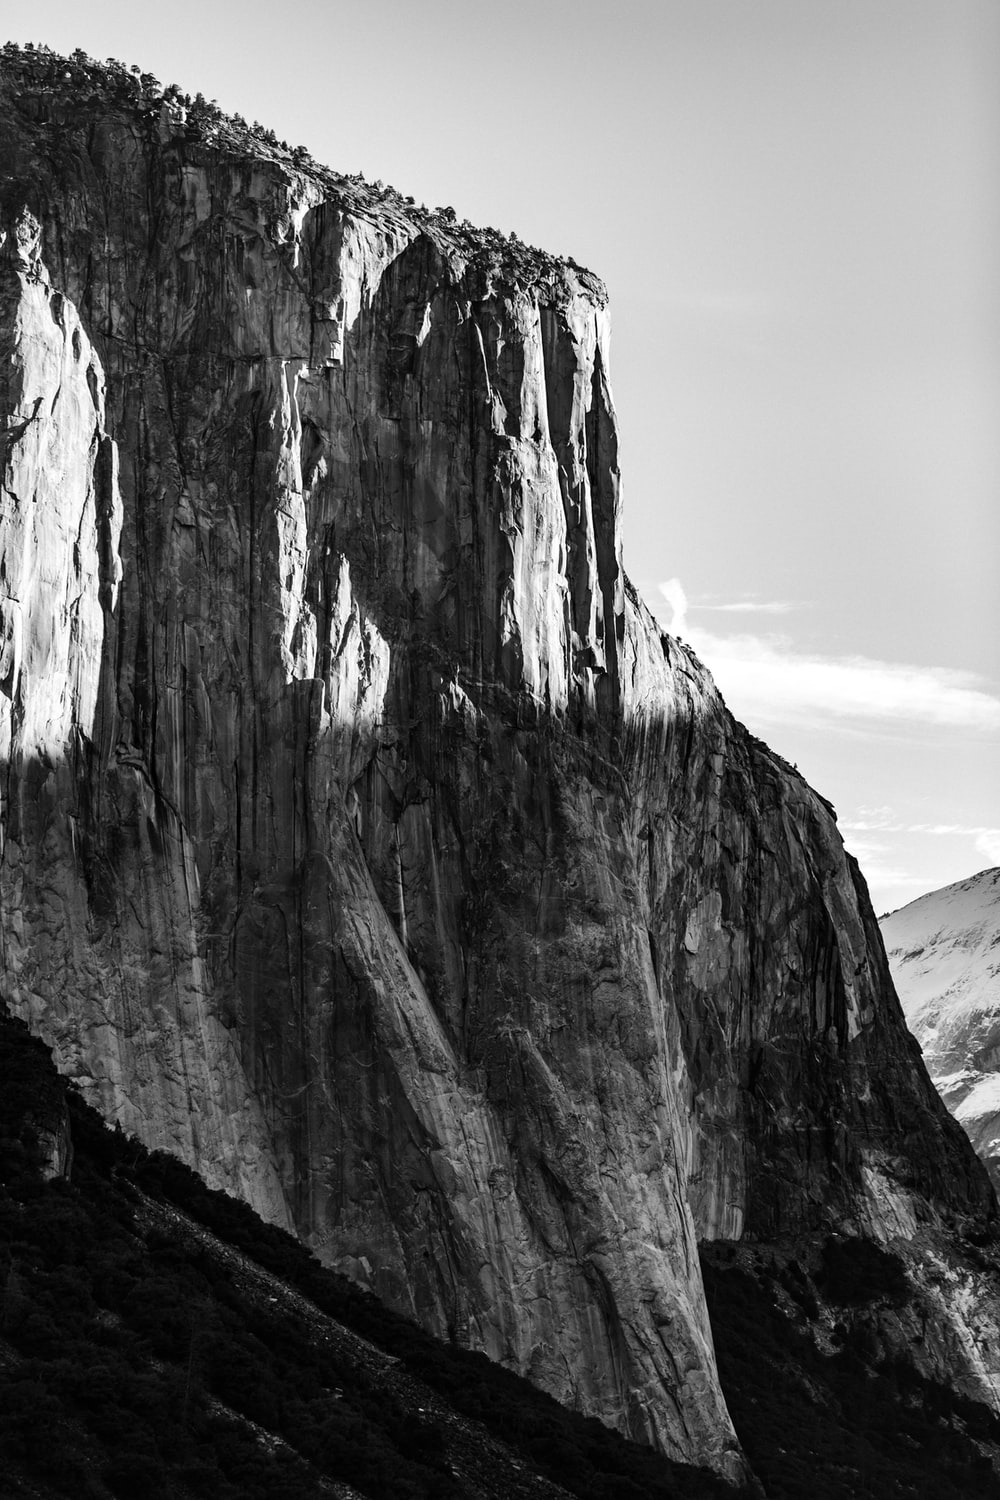 greyscale photography of rock formation